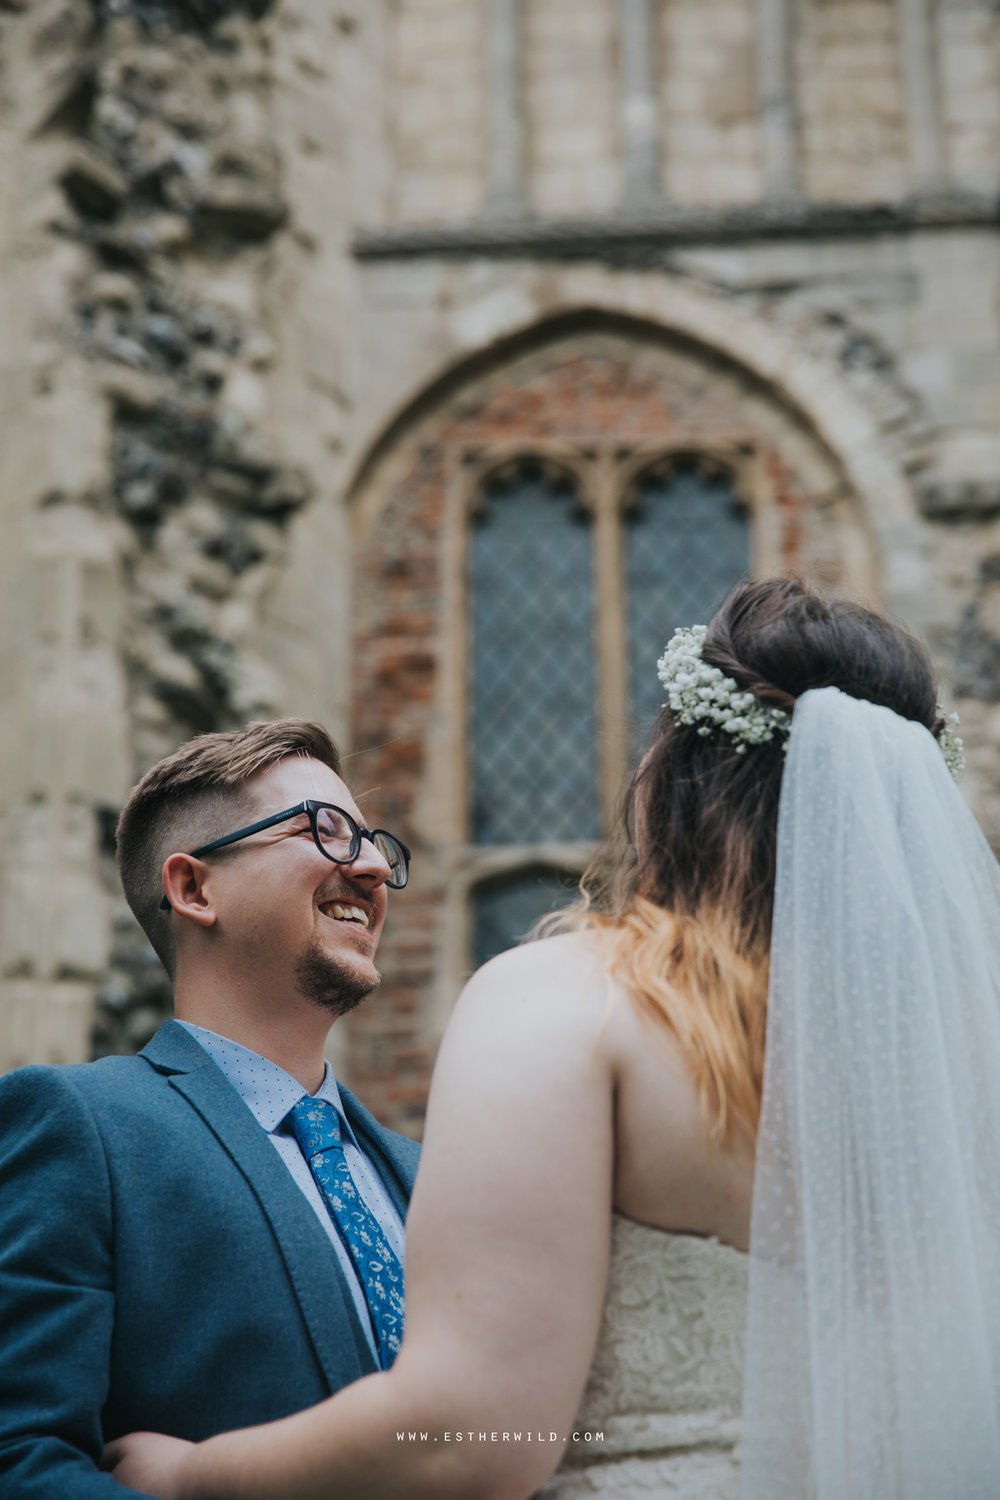 Norwich_Castle_Arcade_Grosvenor_Chip_Birdcage_Cathedral_Cloisters_Refectory_Wedding_Photography_Esther_Wild_Photographer_Norfolk_Kings_Lynn_3R8A1883.jpg